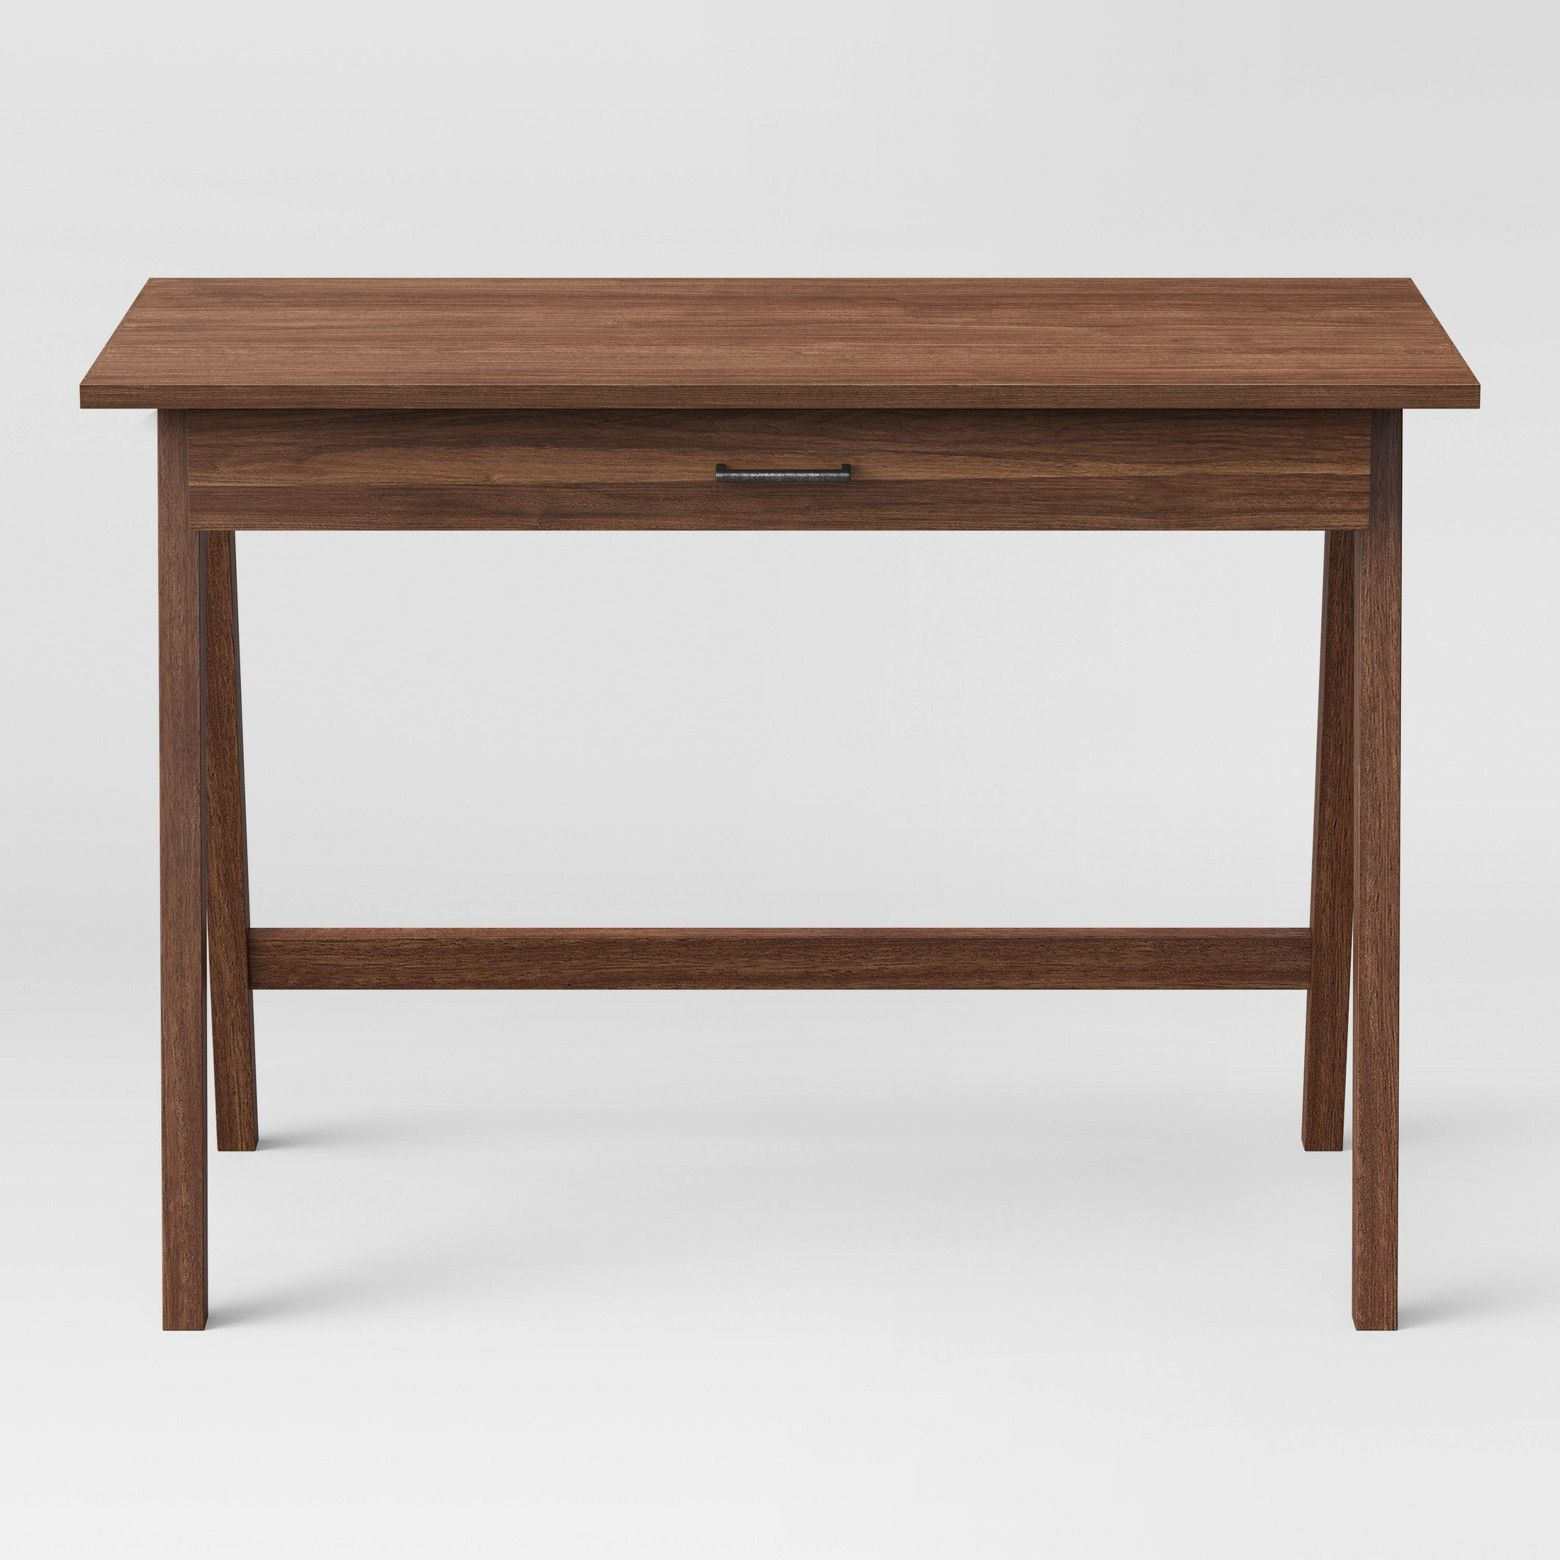 Paulo Wood Writing Desk With Drawers Project 62 Writing Desk With Drawers Wood Writing Desk Desk With Drawers